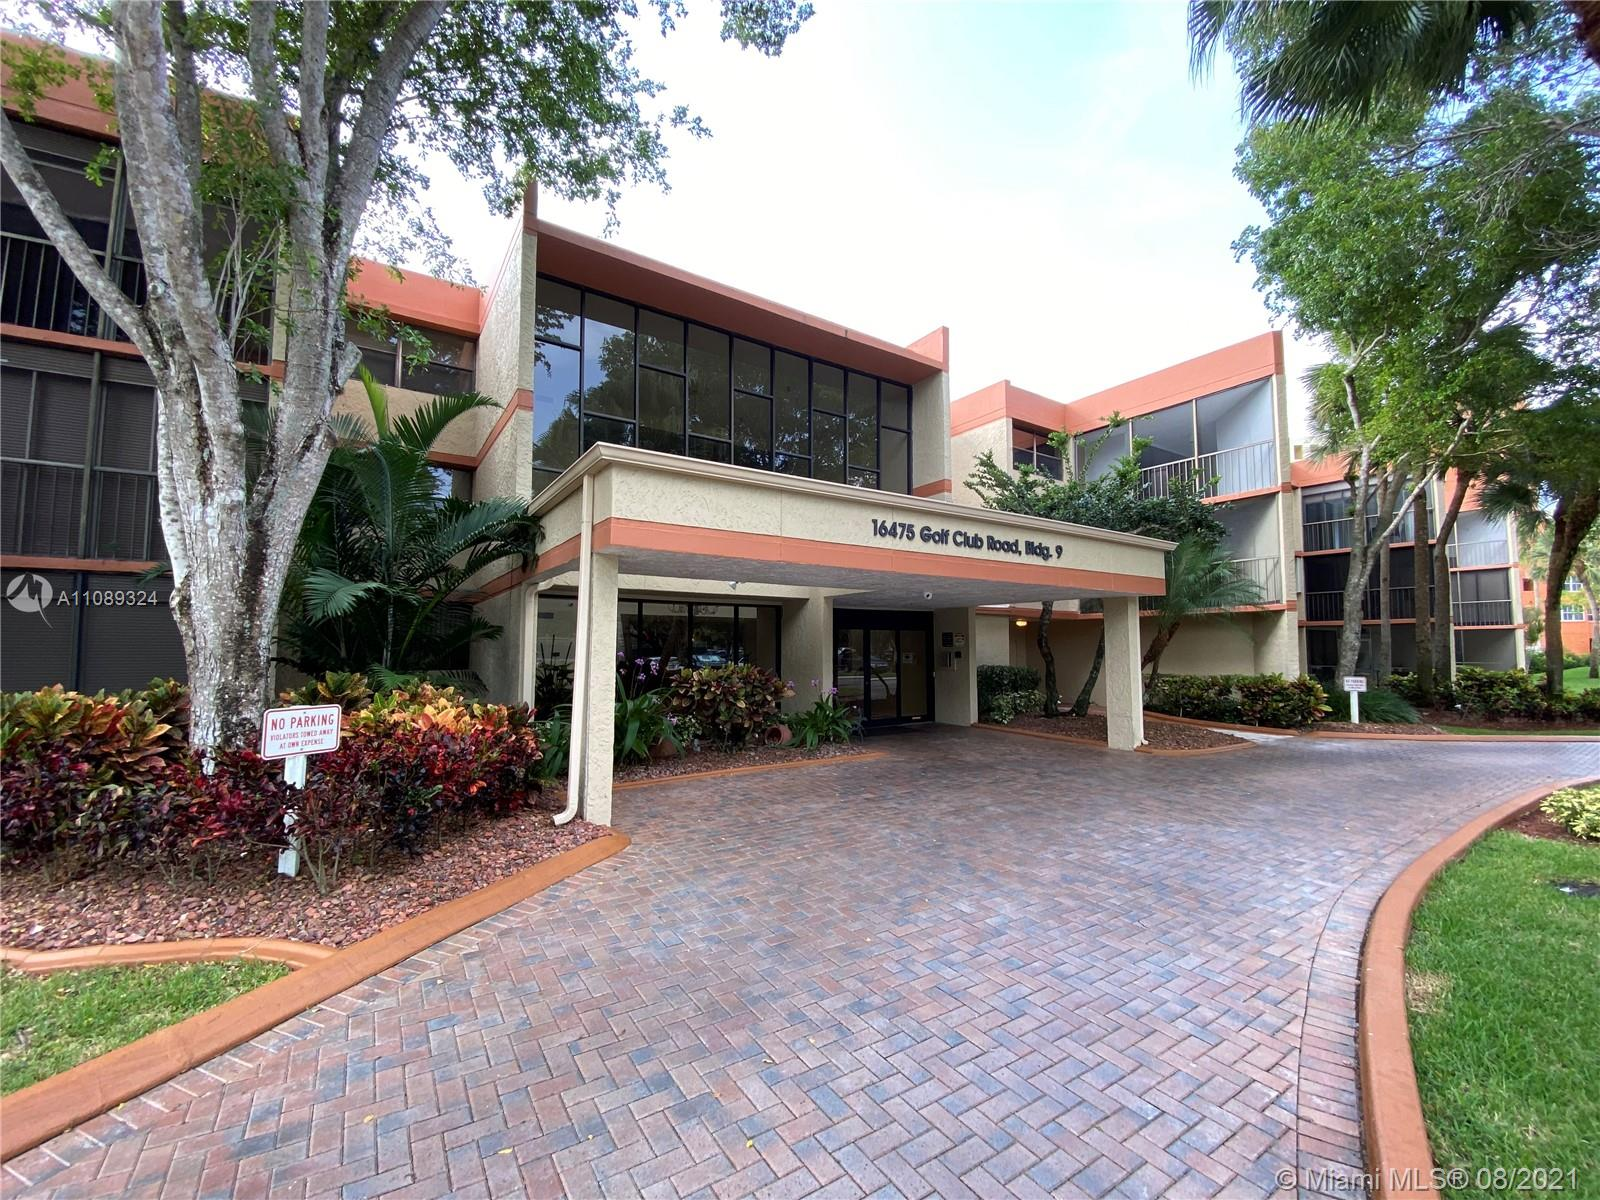 """REDUCED. One-of-a-kind 1 bed. 2 full baths CONDO in Country Club Village, Weston. Great layout. Tile flooring throughout the entire unit. Laundry room inside the apartment. Extra storage space outside the unit. Large balcony with sliding glass door that can be conveniently used as a private entrance through the front of the unit. The MASTER bedroom is HUGE, with two closets including a walking one, and a very comfortable bathroom. ADDITIONAL ASSIGNED GUEST PARKING FOR THIS UNIT. Weston has been ranked in CNN Money's """"Best Places to Live in America"""". This cultural gem is where you'll find art festivals, concerts, and celebrity golf tournaments. A city that offers an array of excellence from A+ schools to beautiful biking and walking trails for a tranquil Florida escape."""